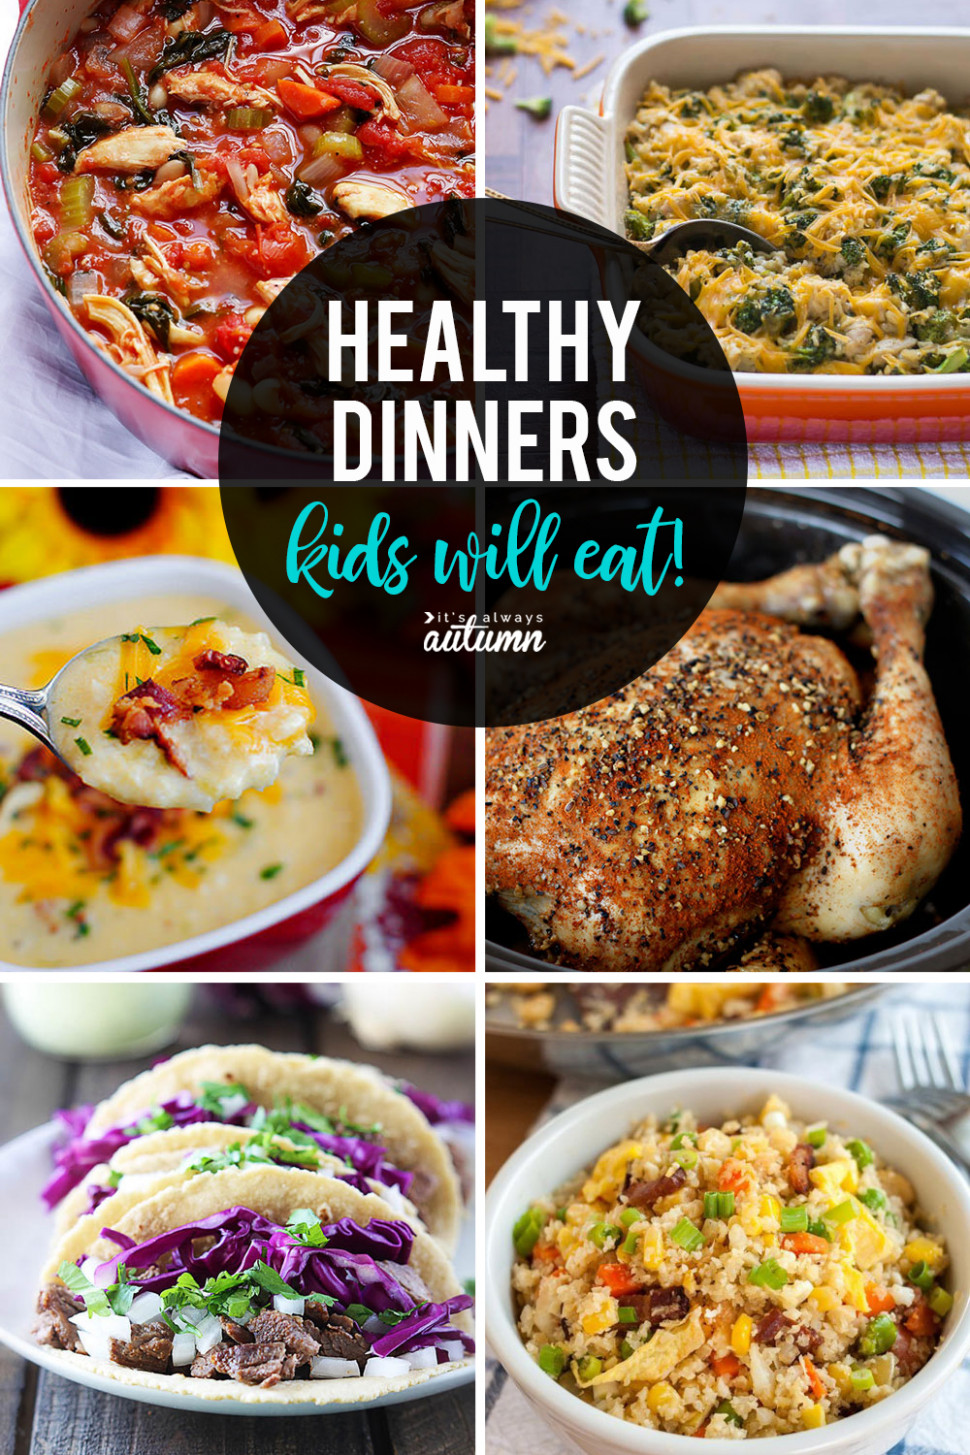 14 healthy easy recipes your kids will actually want to eat ..